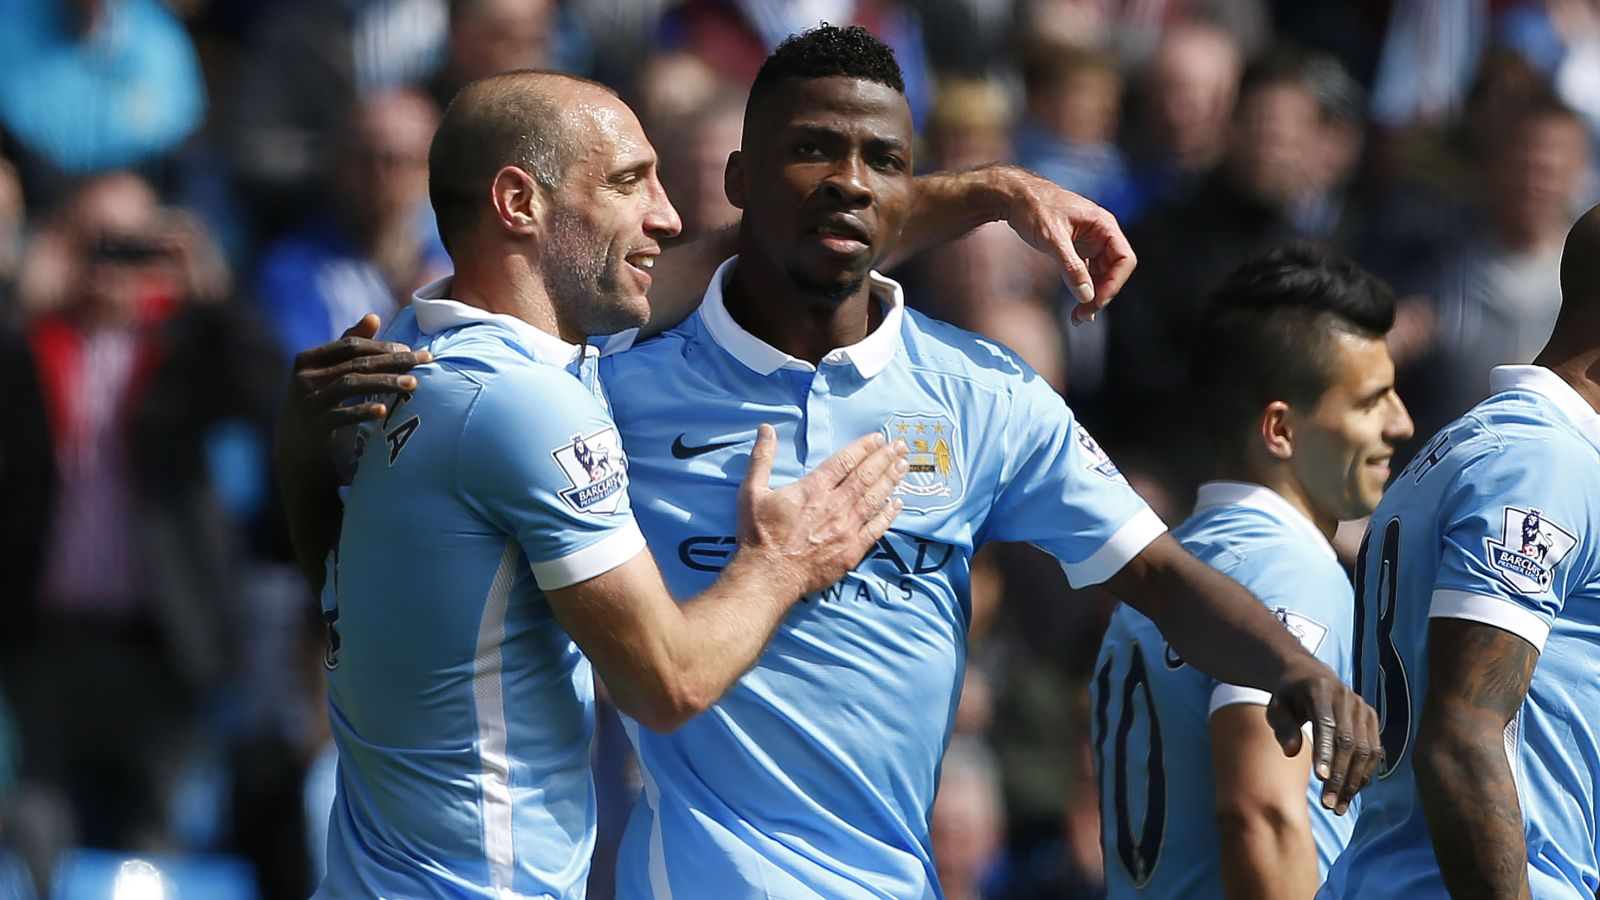 Manchester City steamroll Stoke to move up to third in EPL